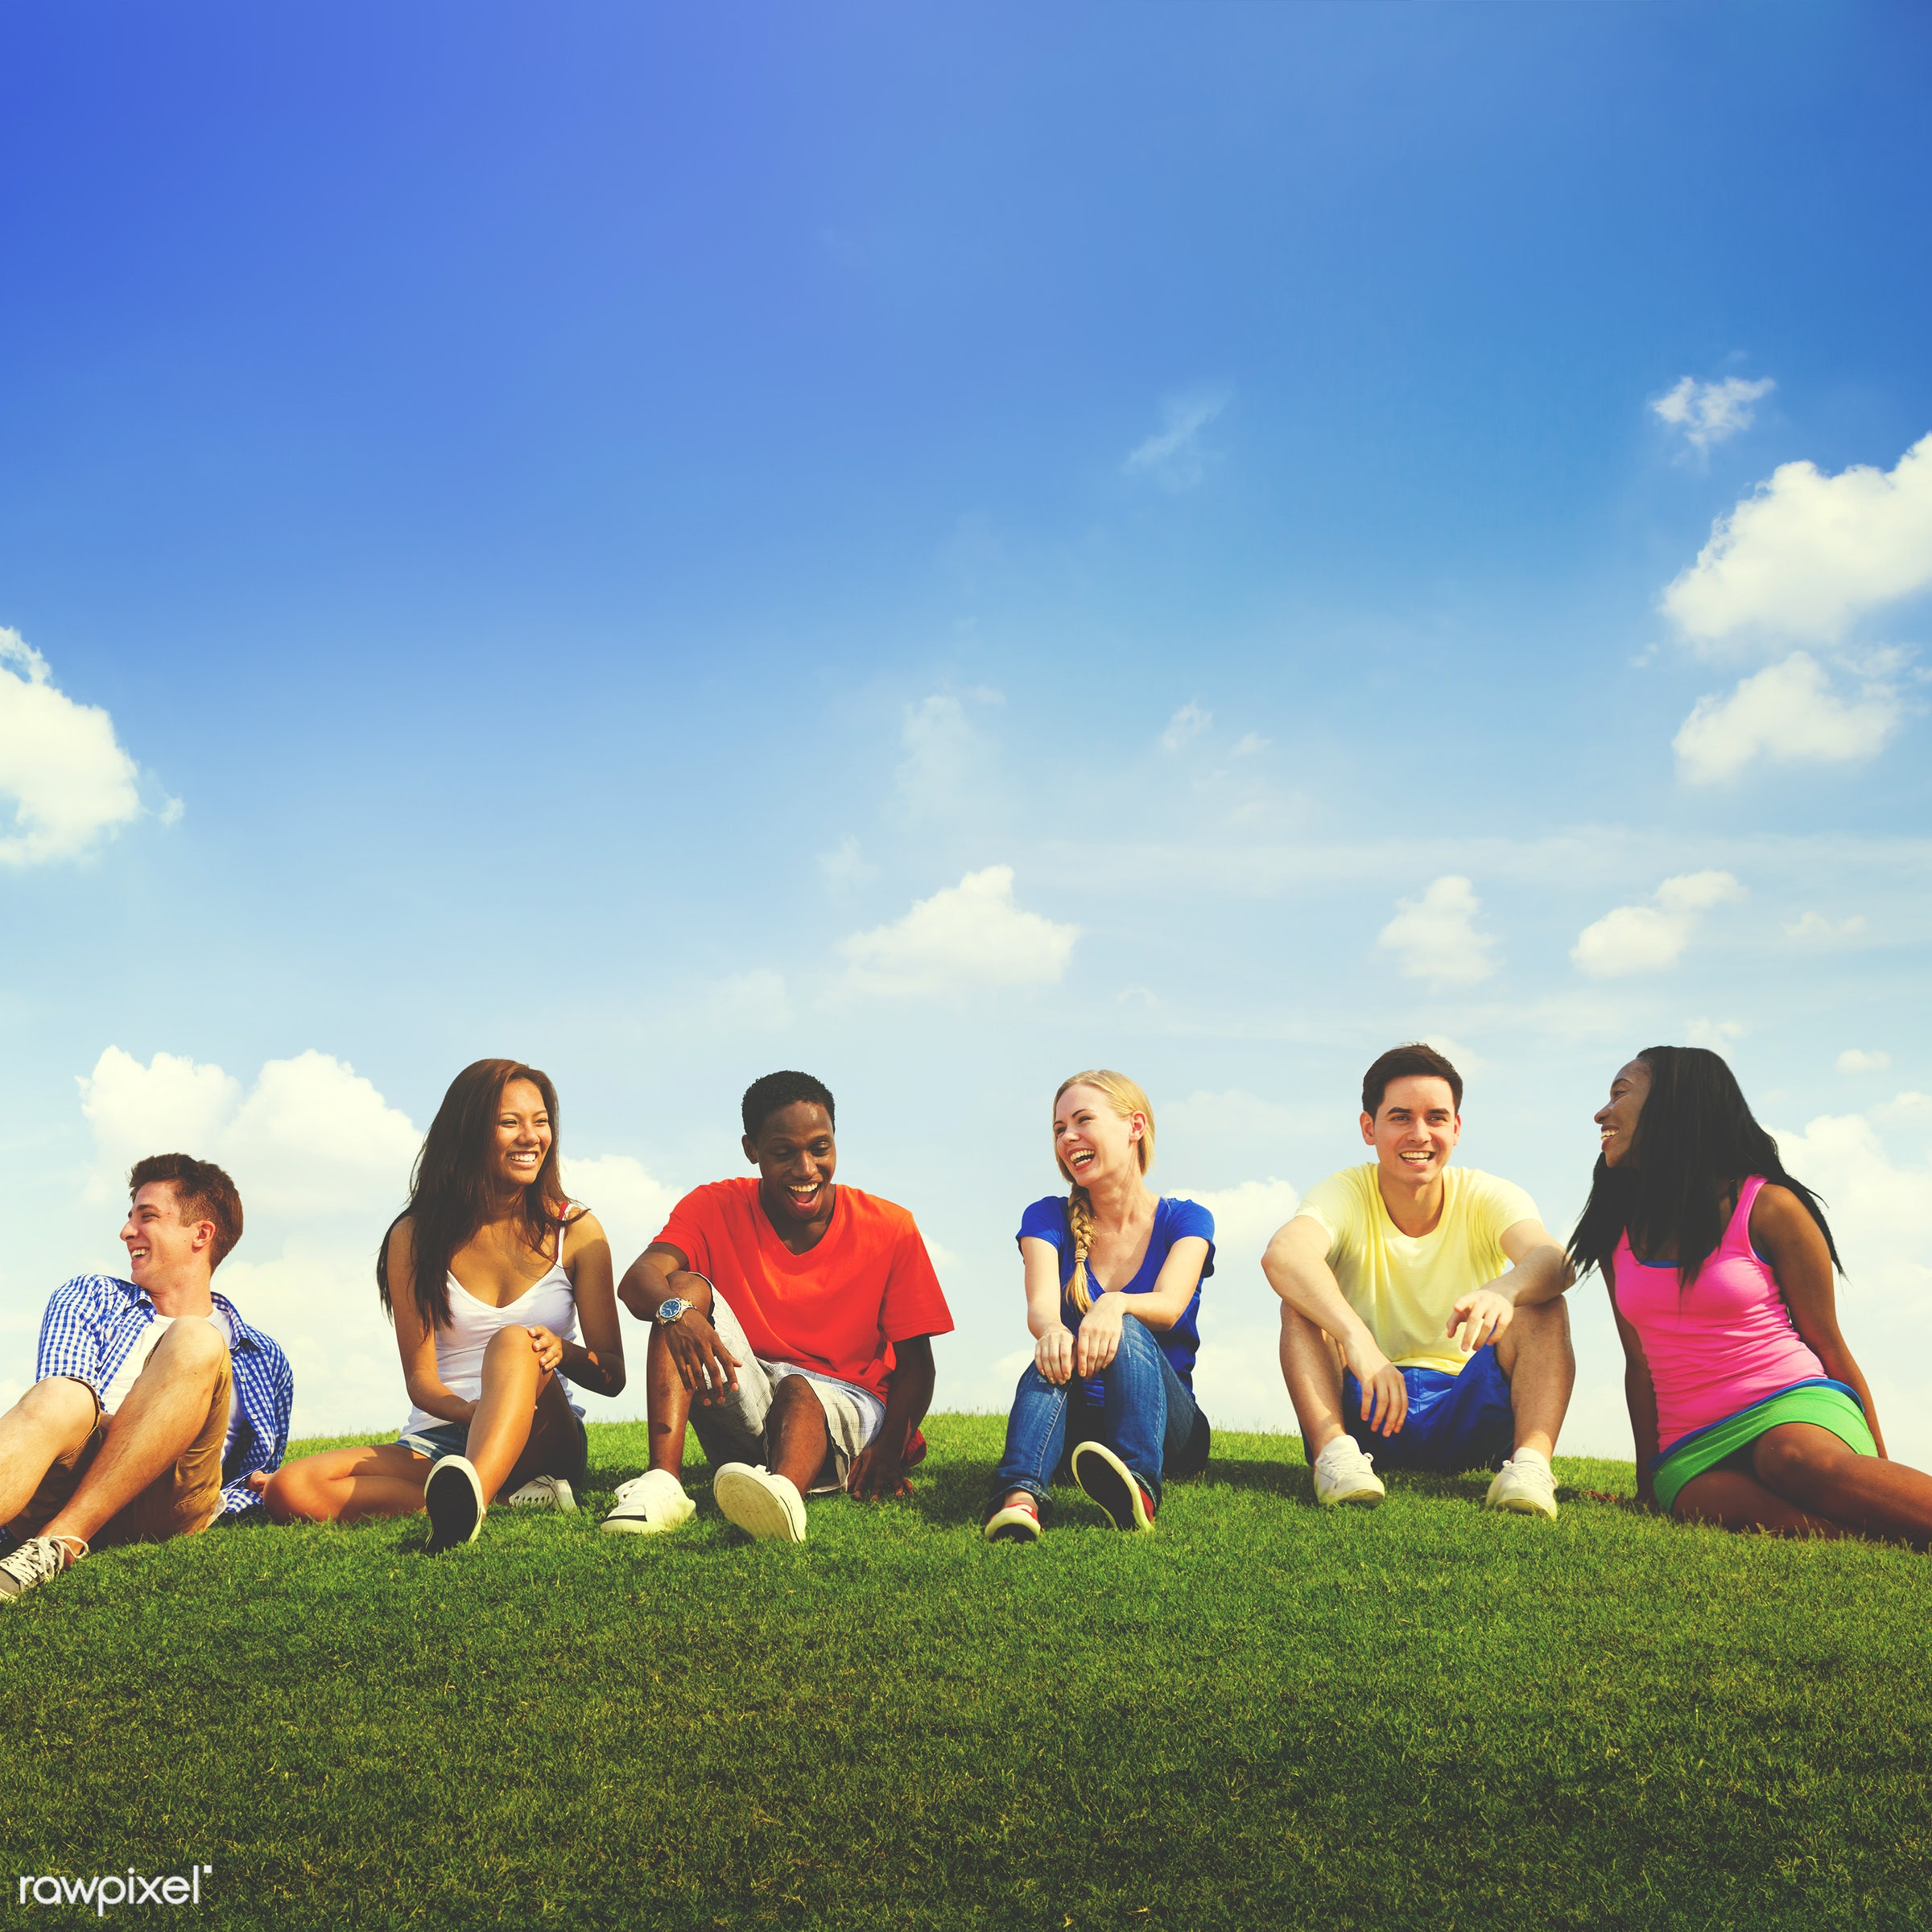 teenager only, blue sky, casual, cheerful, cloud, college student, comfortable, communication, community, confident, connect...